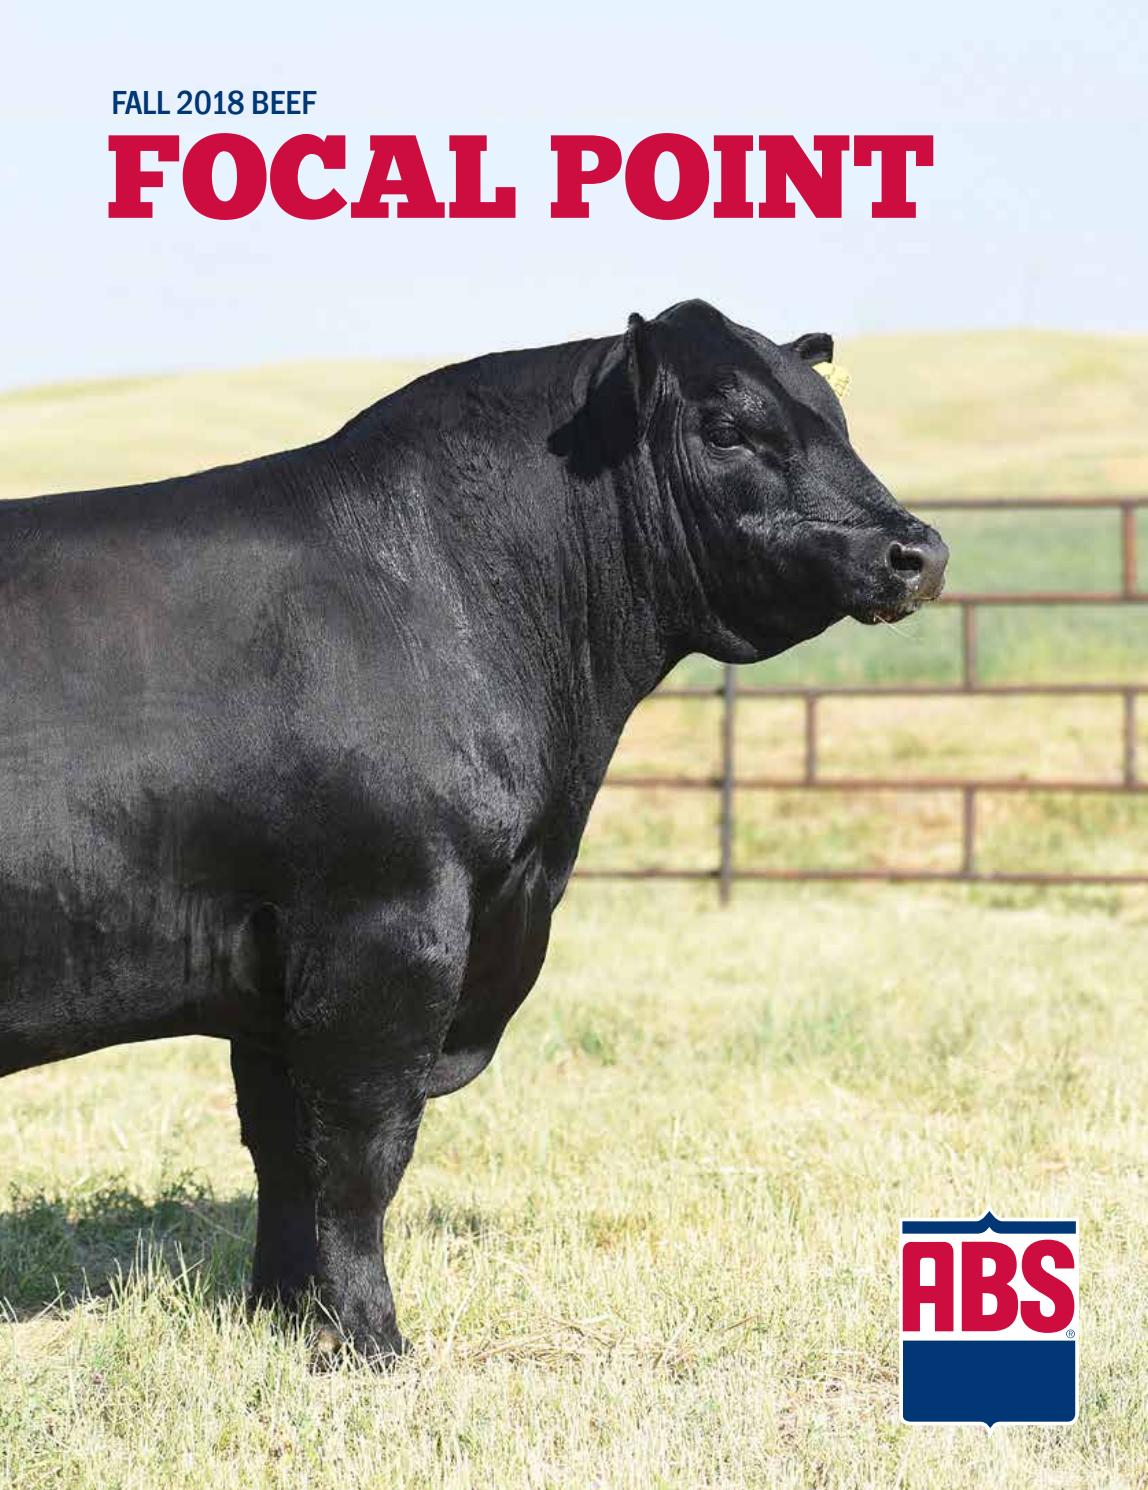 Fall 2018 Beef Focal Point by ABS Global, Inc  - issuu